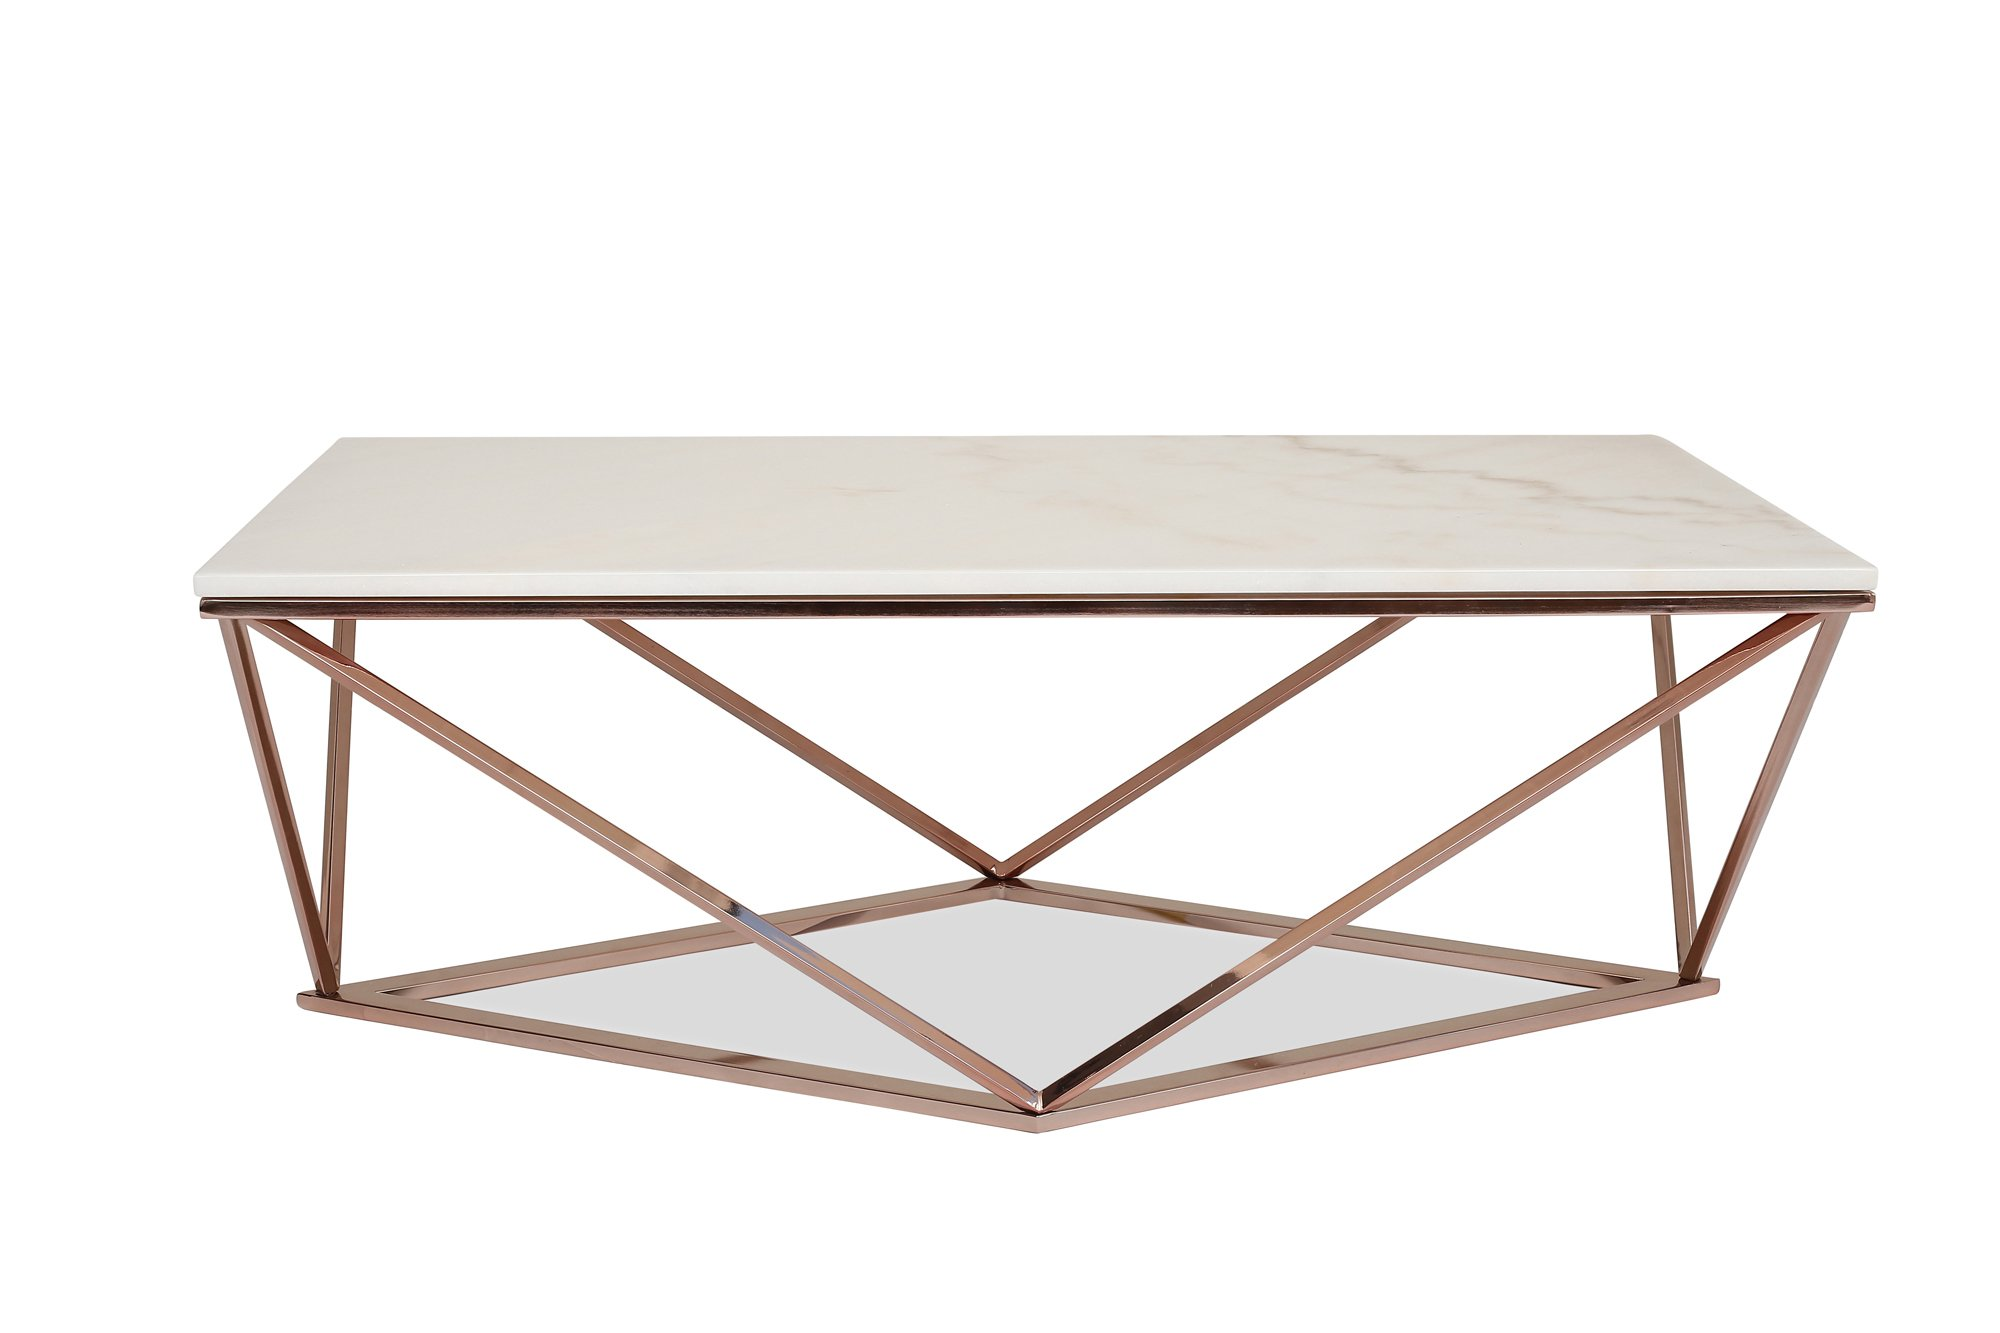 Edloe Finch Modern Marble Coffee Table - Rose Gold Cocktail Tables for Living Room, White by Edloe Finch